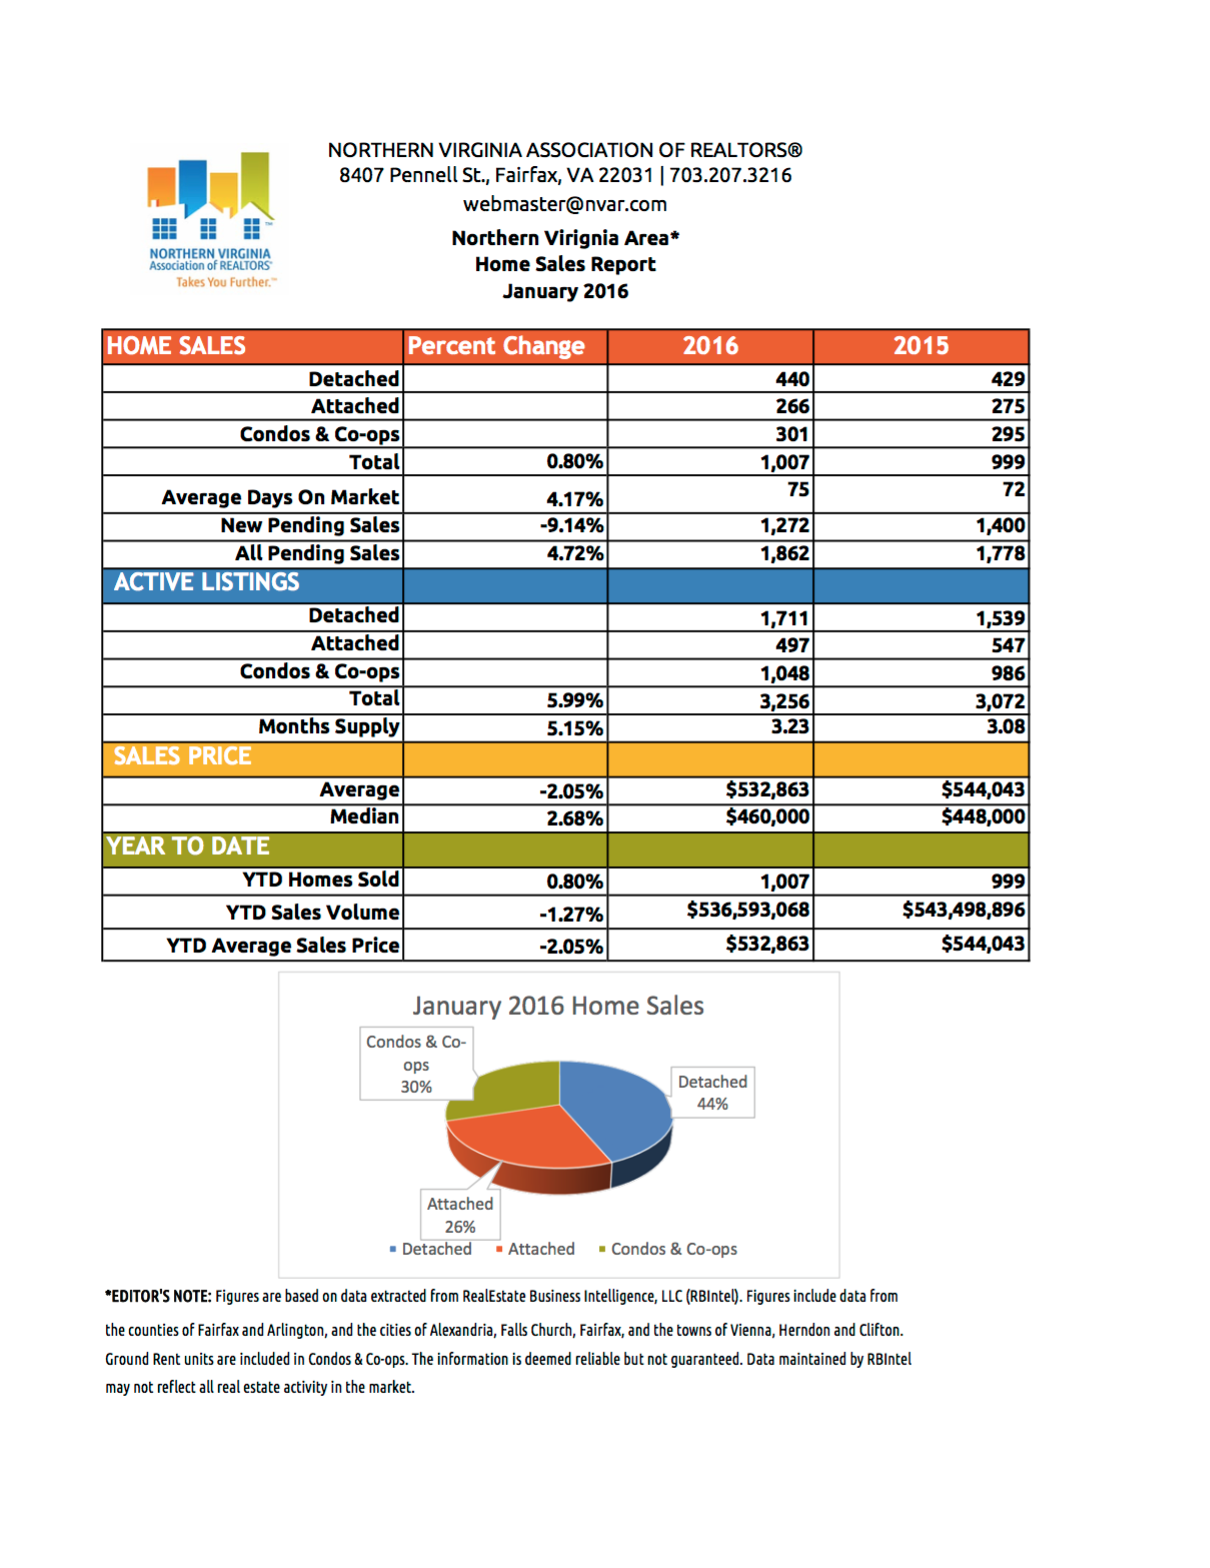 January 2016 Northern Virginia Market Report